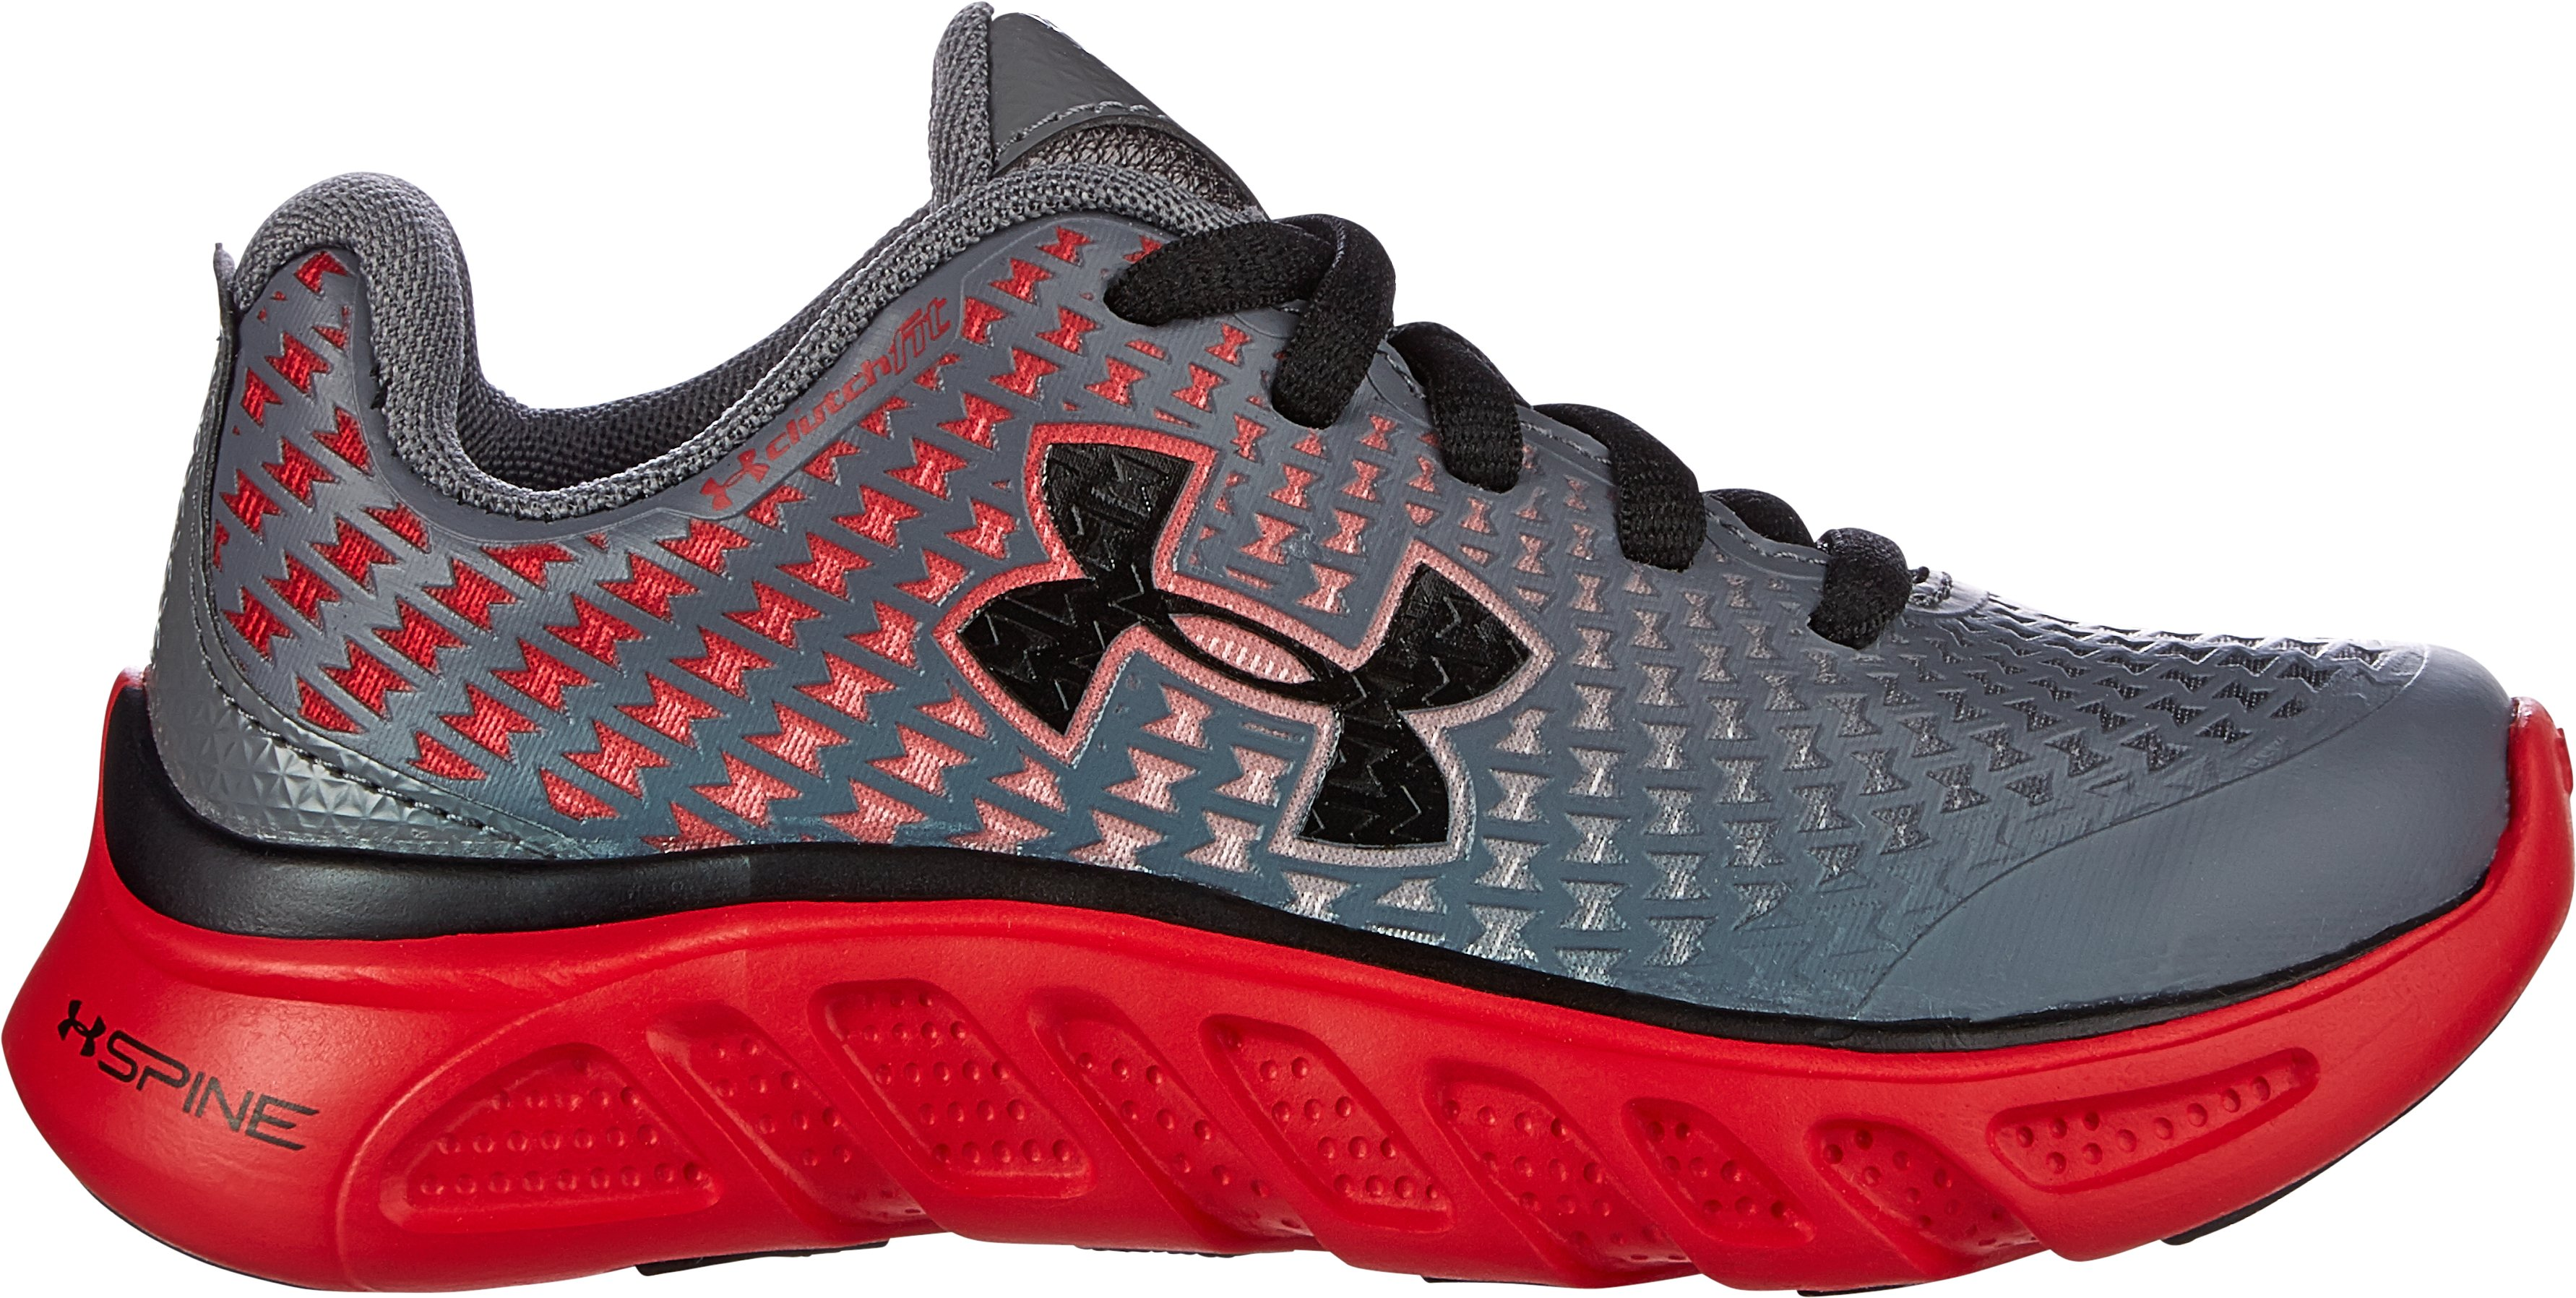 Boys' Pre-School UA Spine™ Clutch Shoes, Graphite, zoomed image